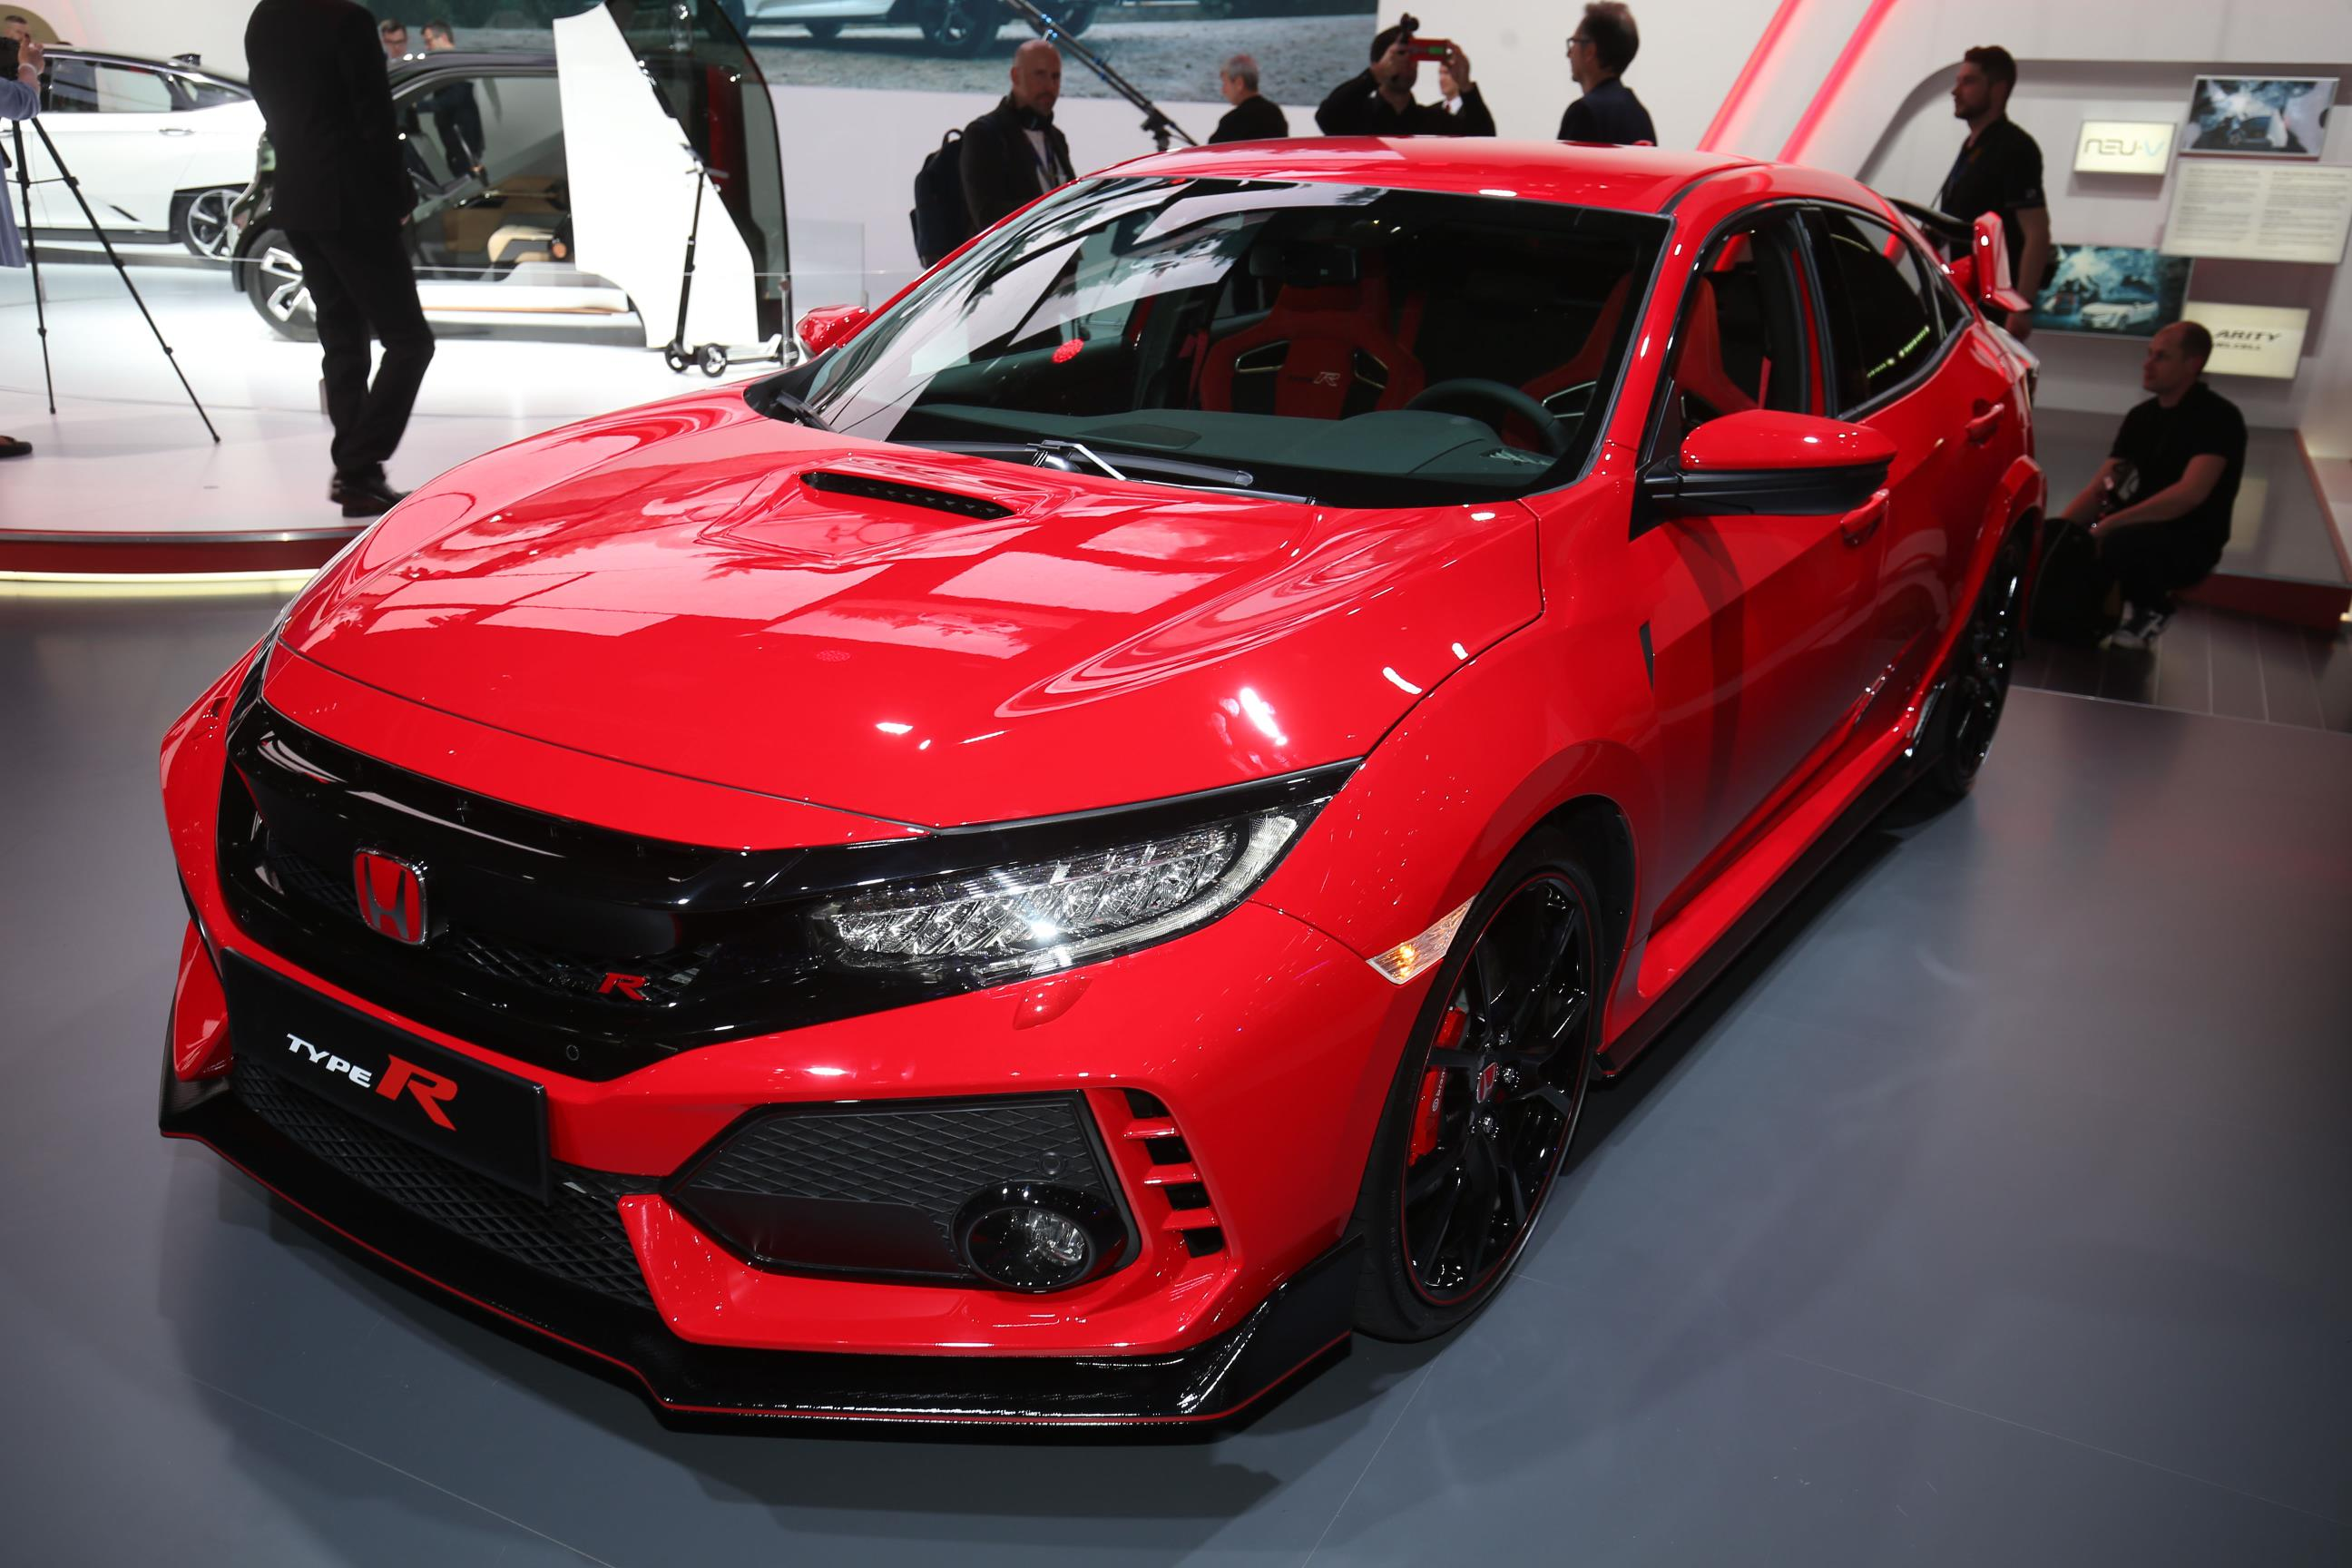 honda to debut u s spec fk8 civic type r at 2017 new york auto show autoevolution. Black Bedroom Furniture Sets. Home Design Ideas